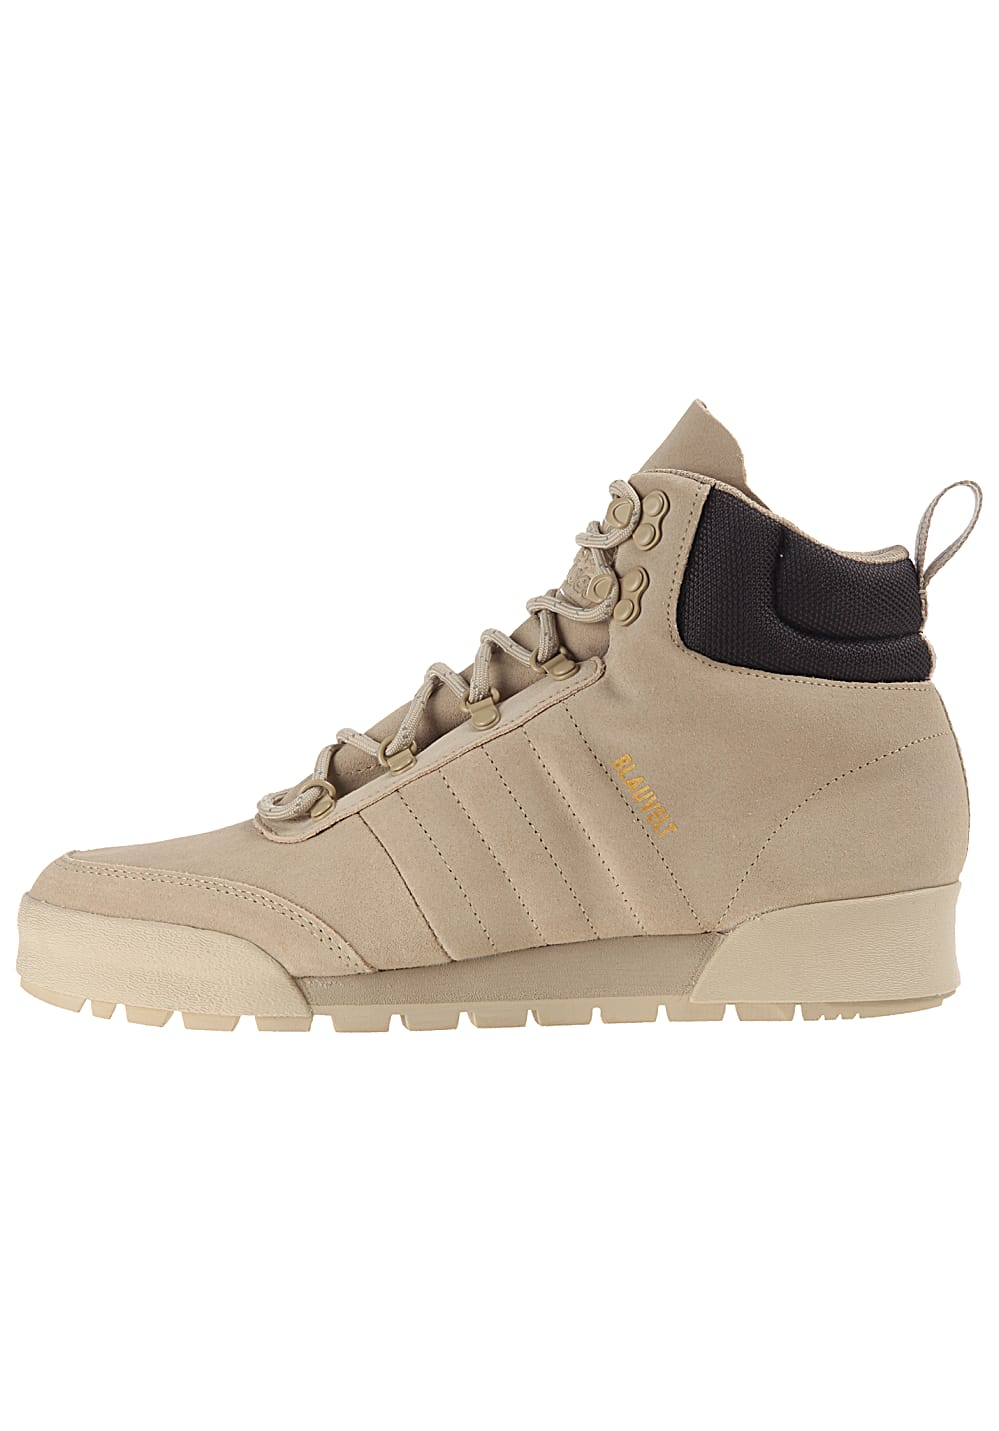 a82cb75a1d4 Adidas Skateboarding Jake Boot 2.0 - Boots for Men - Beige - Planet ...